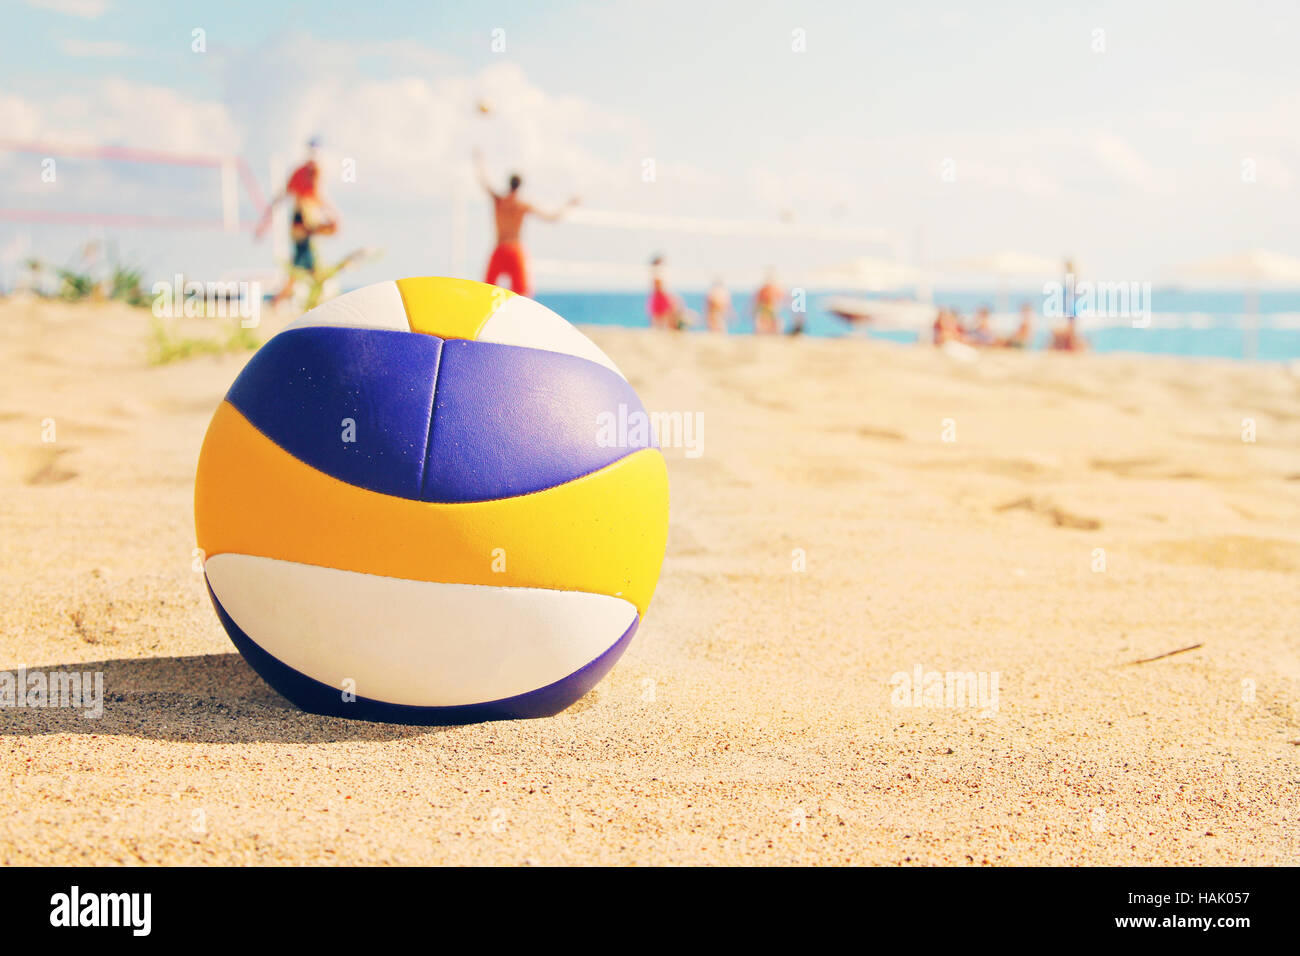 Beach Volleyball Ball In Sands Stock Photo Alamy